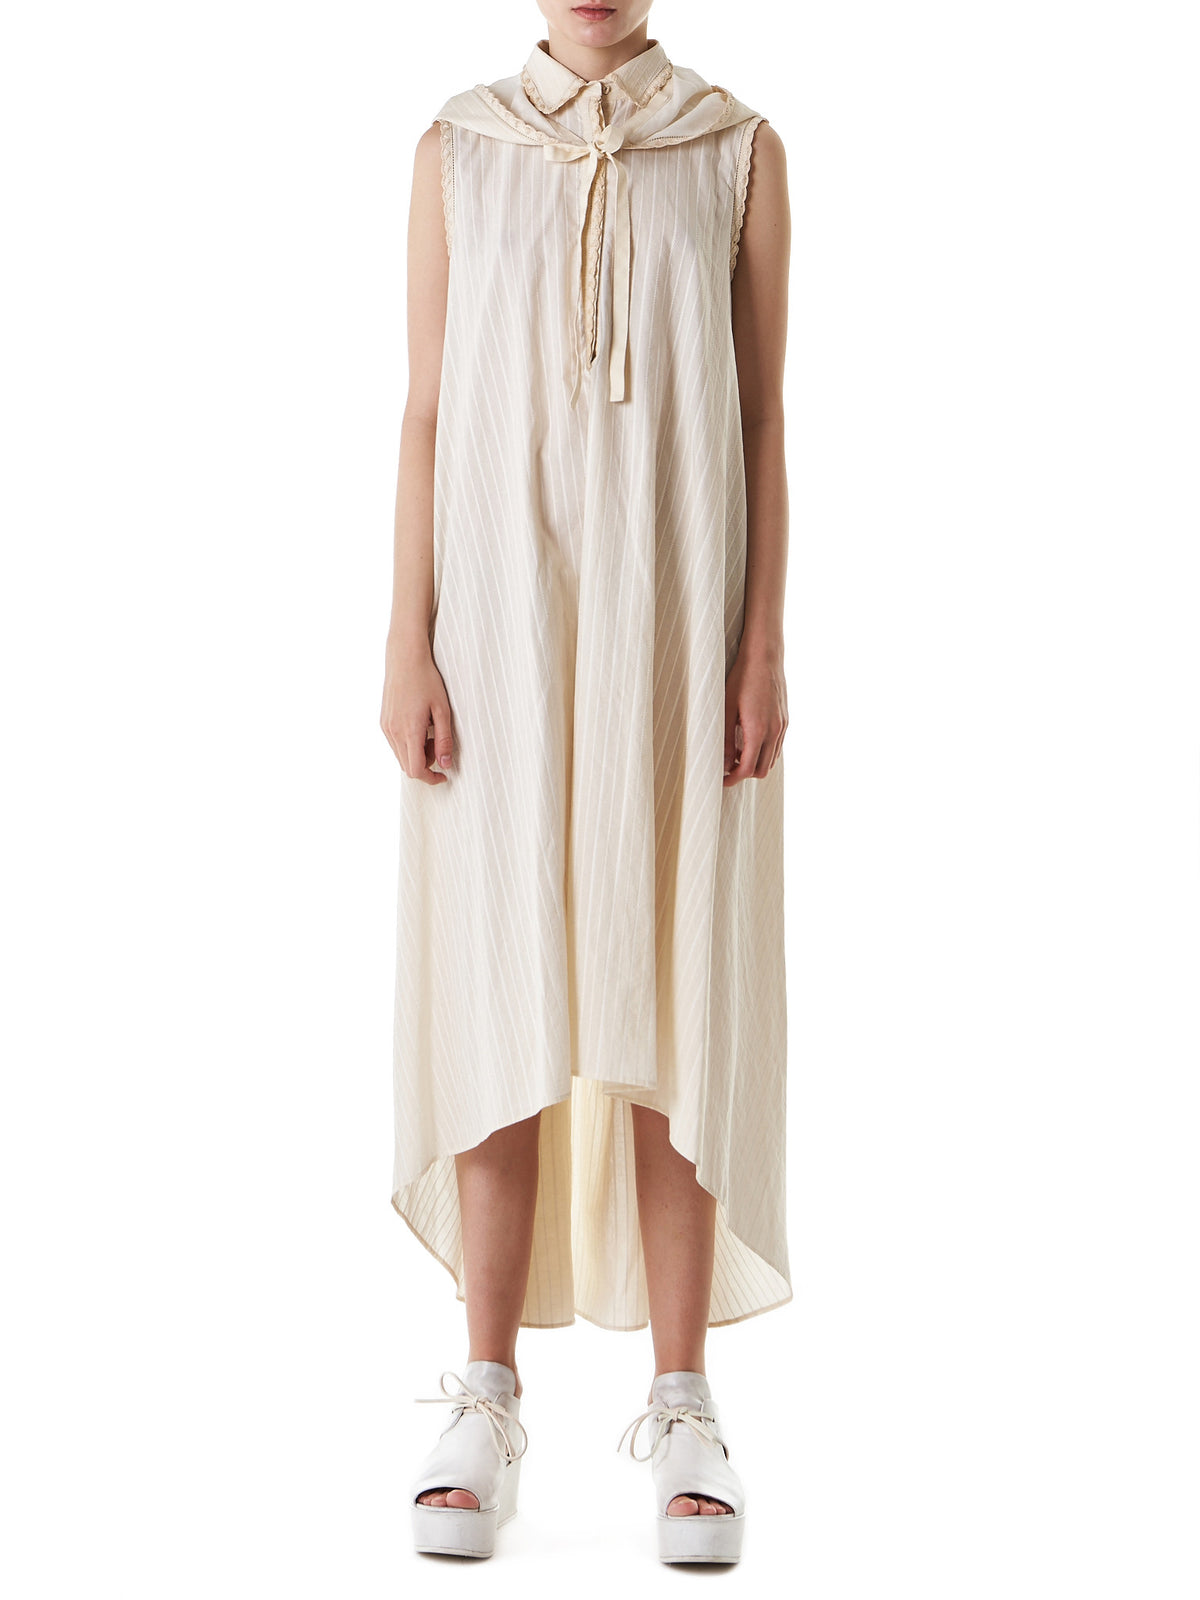 Striped Hooded Nightgown (VDI402A-VI150-044) - H. Lorenzo